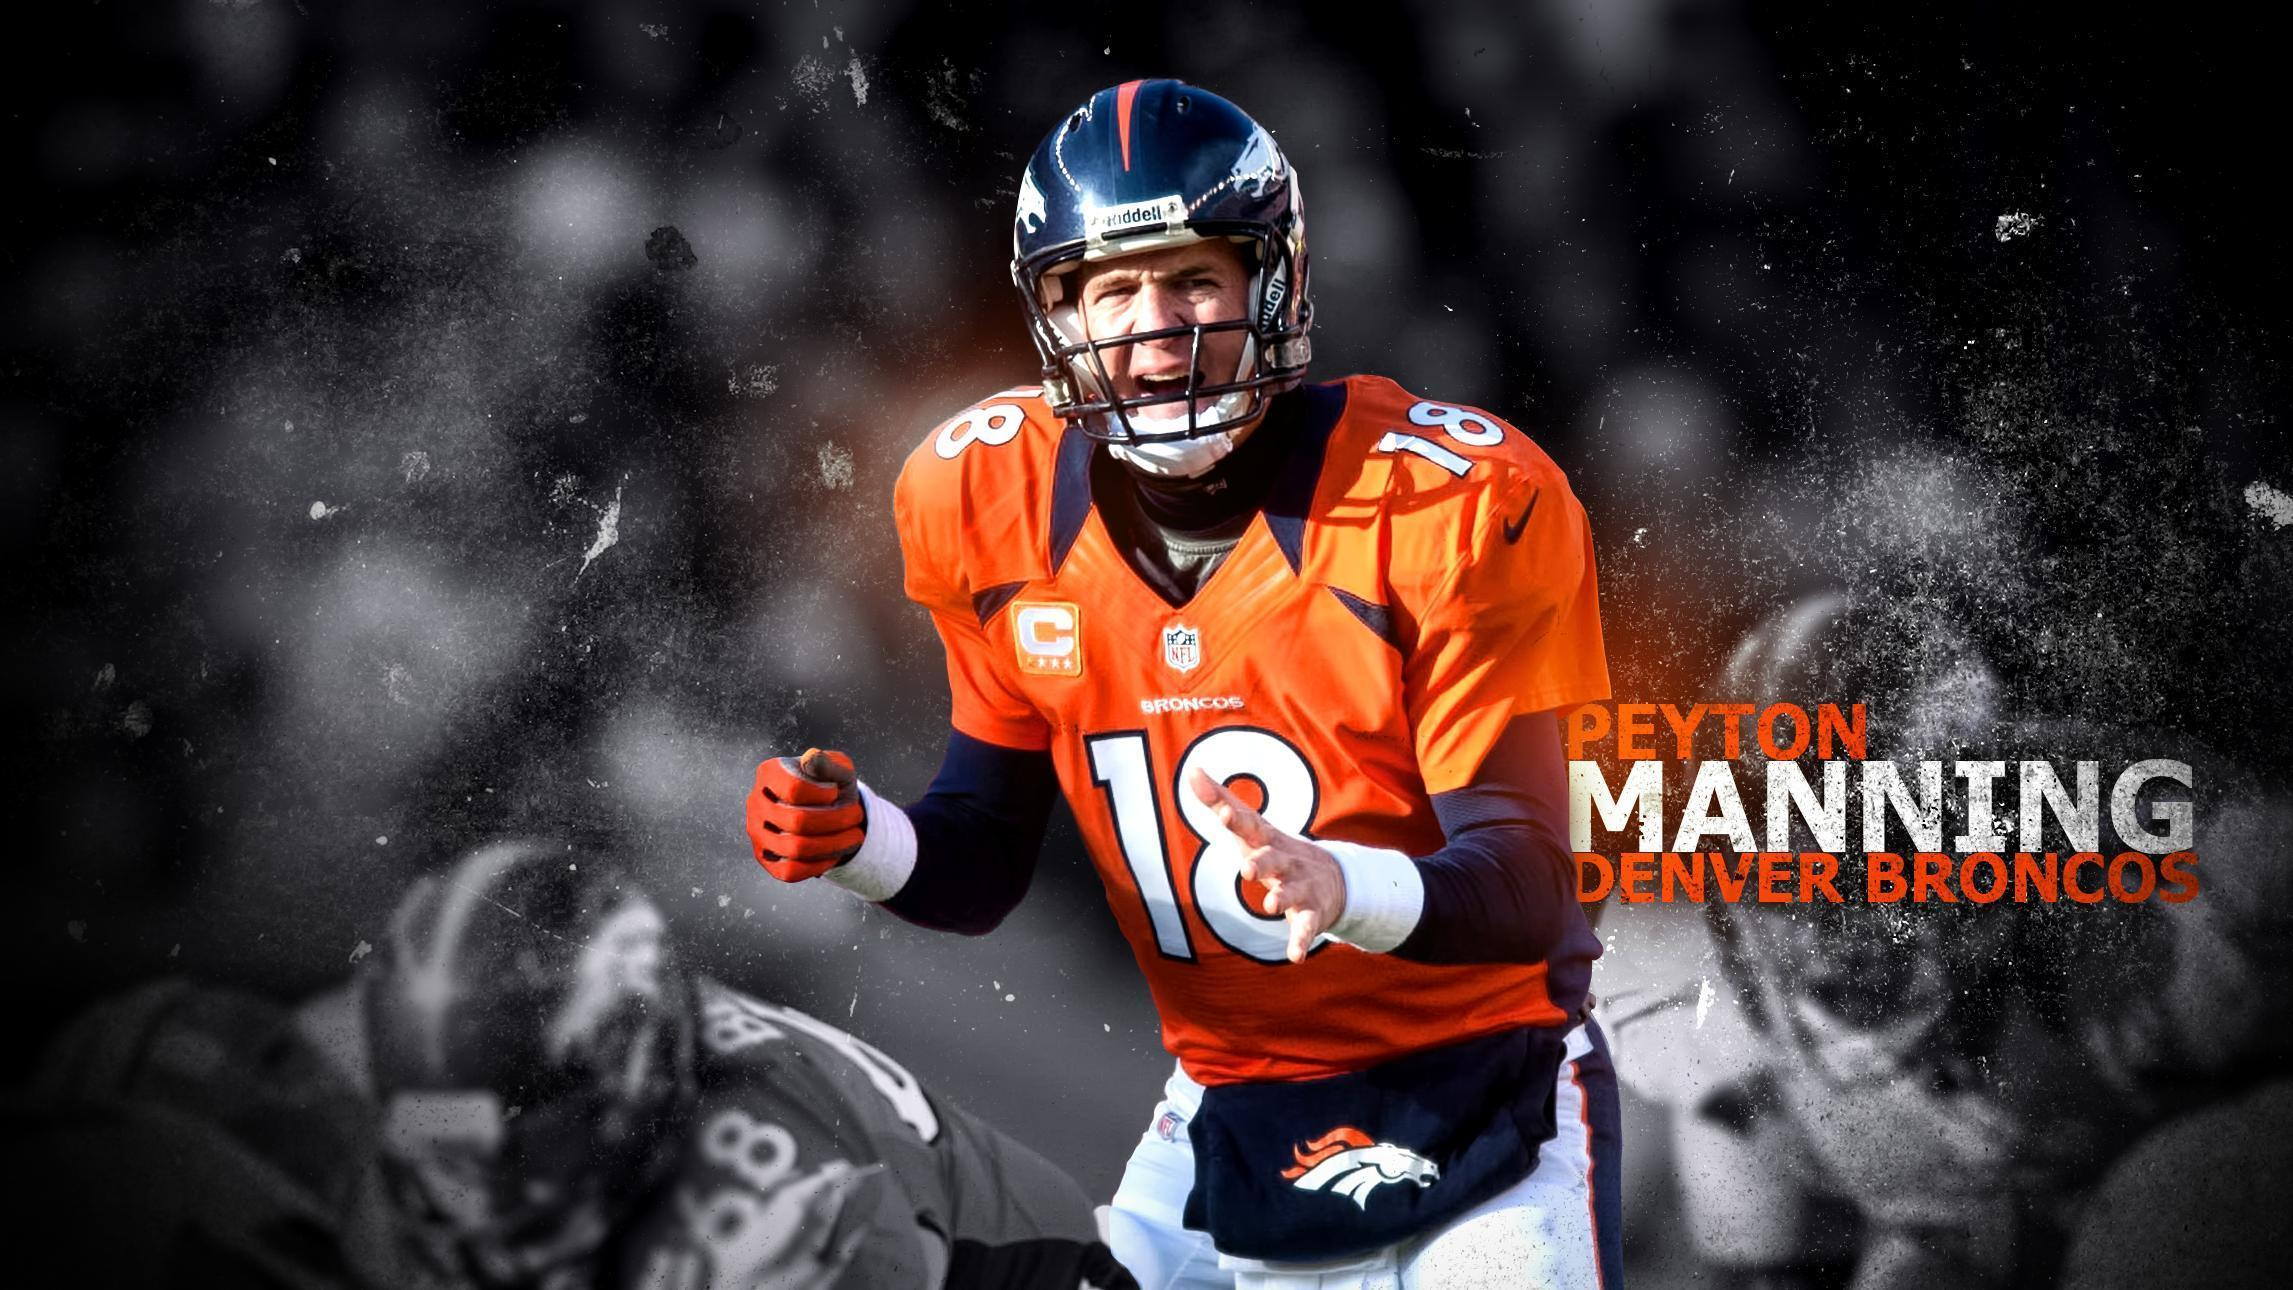 Nfl Player Cool Images: Peyton Manning Wallpapers